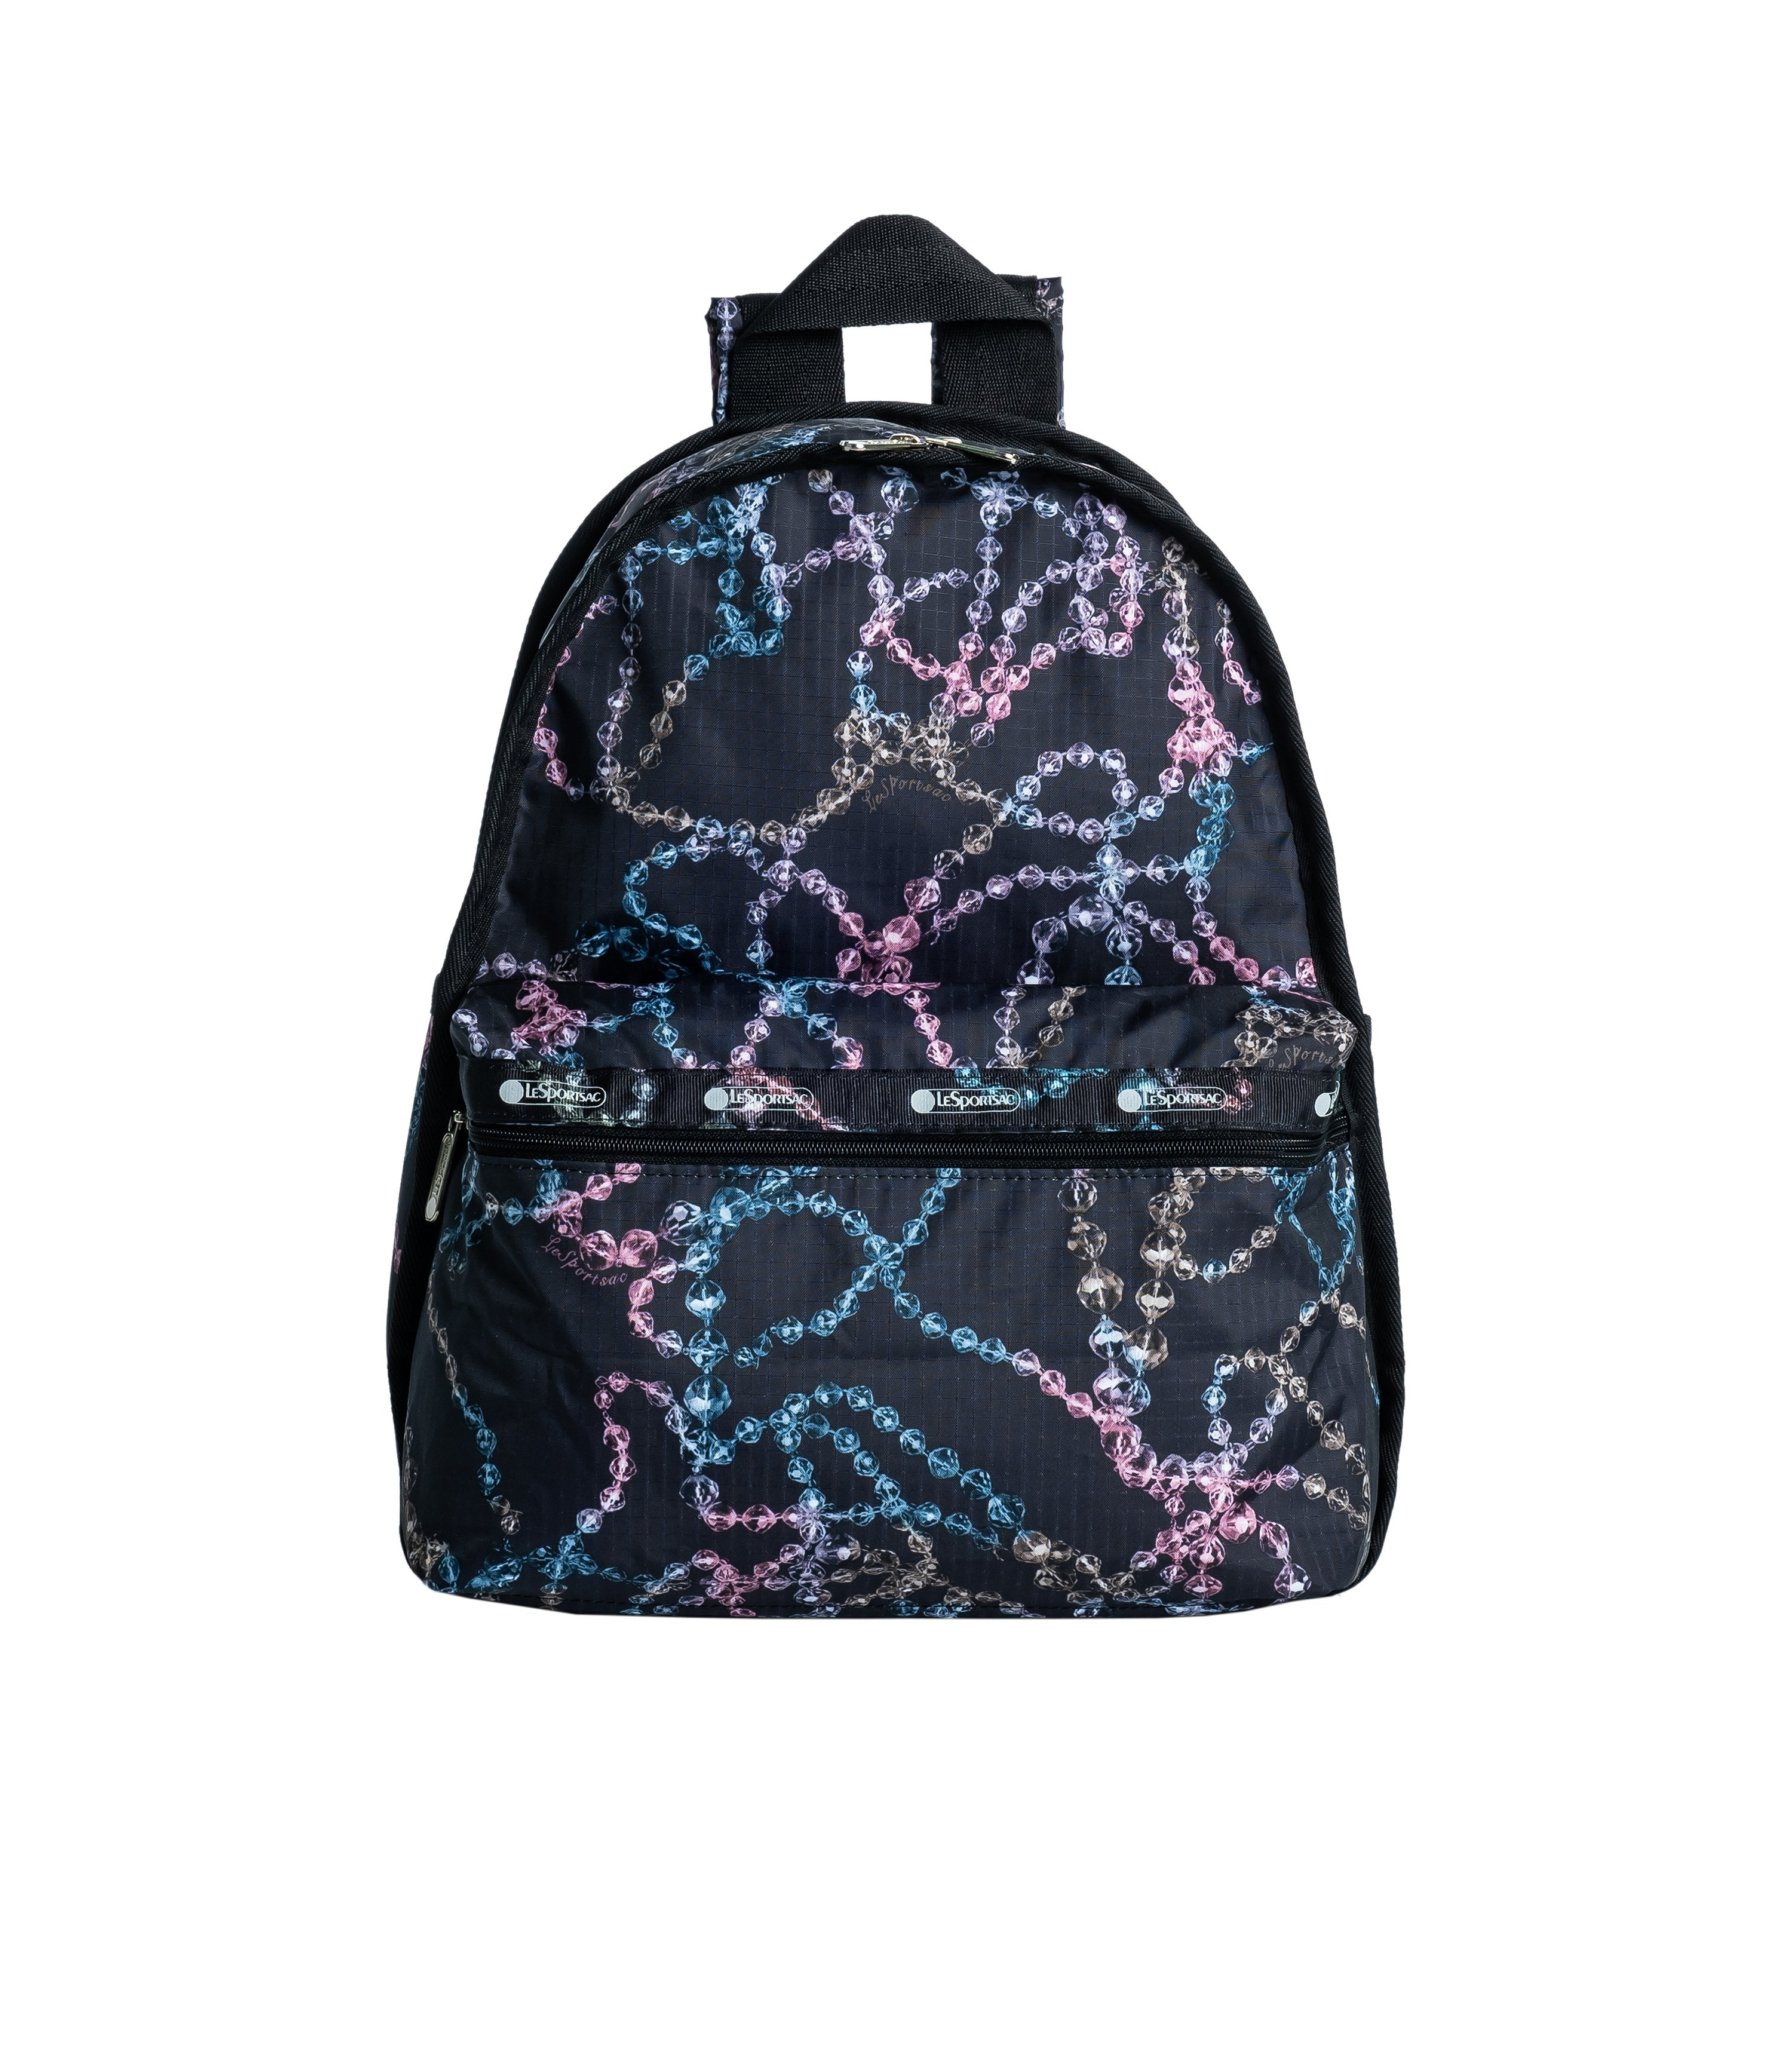 LeSportsac - Backpacks - Basic Backpack - And All That Glitz print